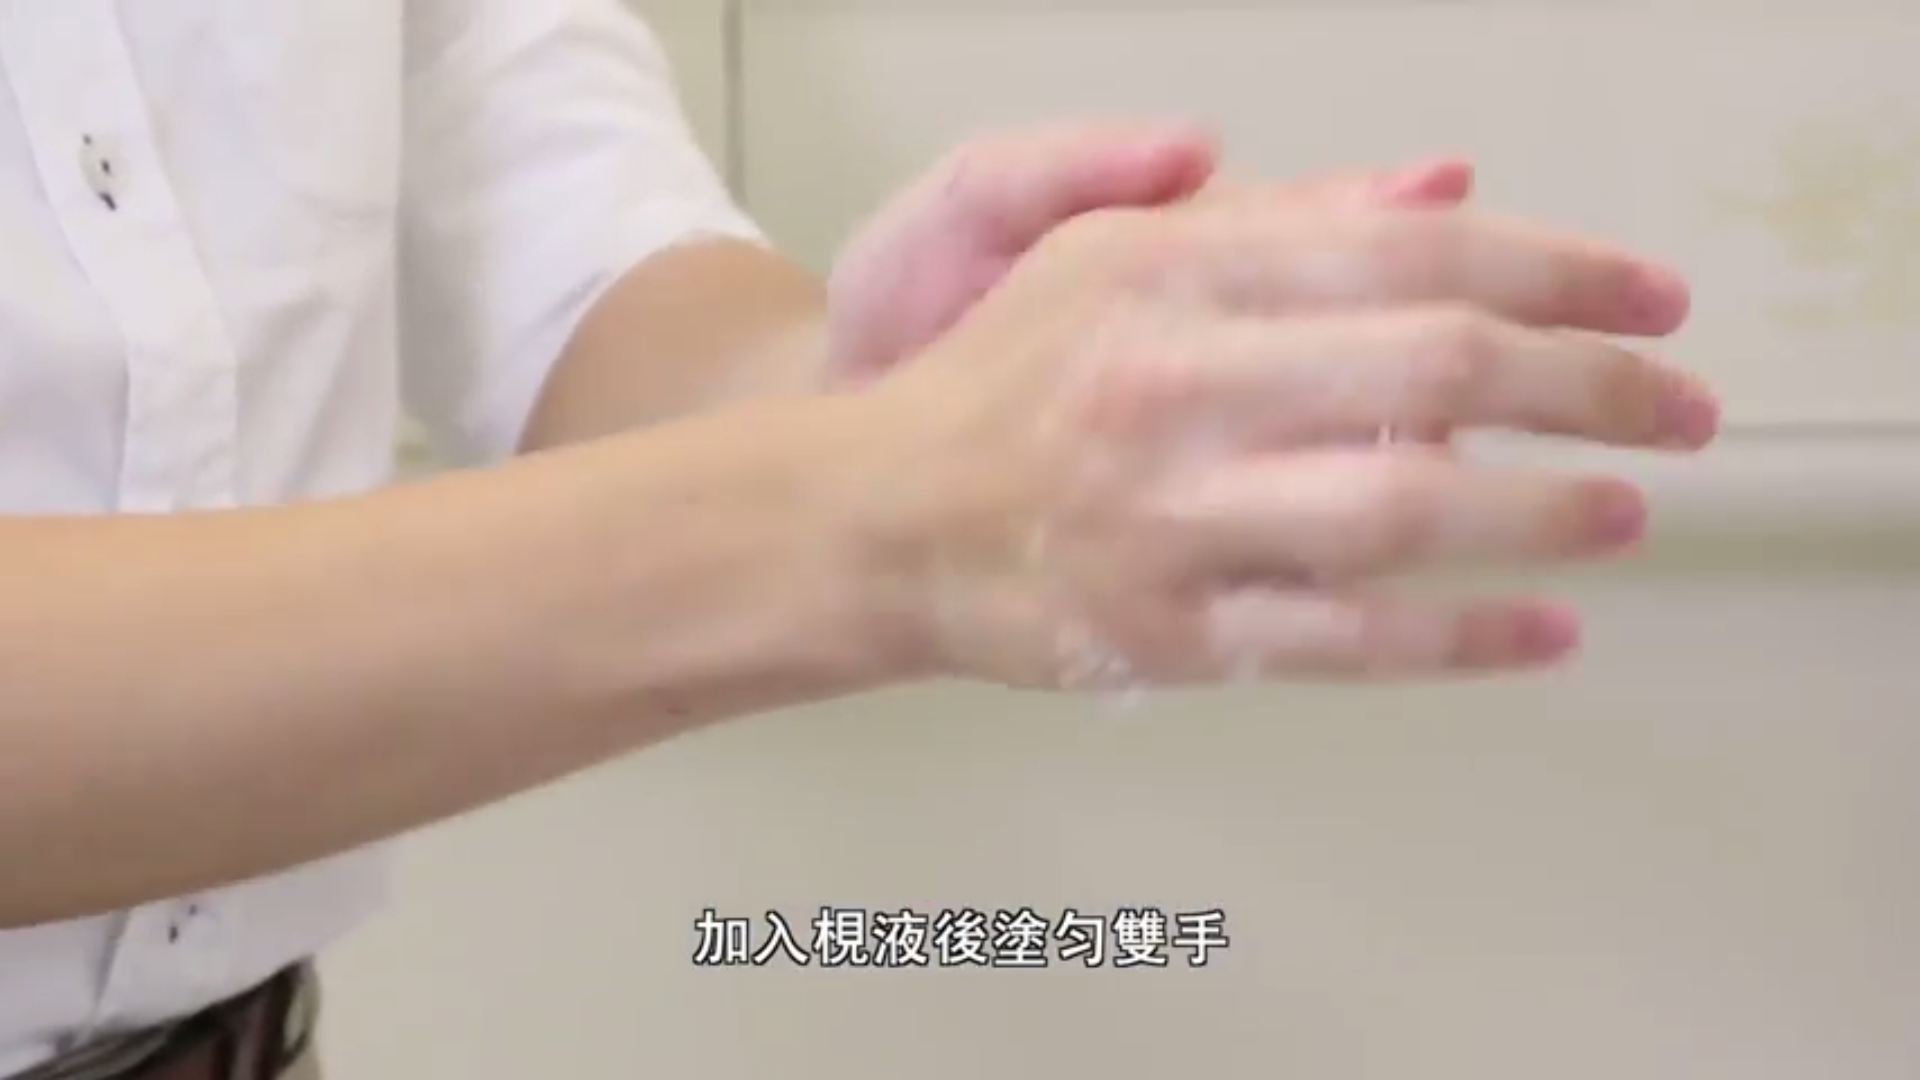 Hand Hygiene Technique